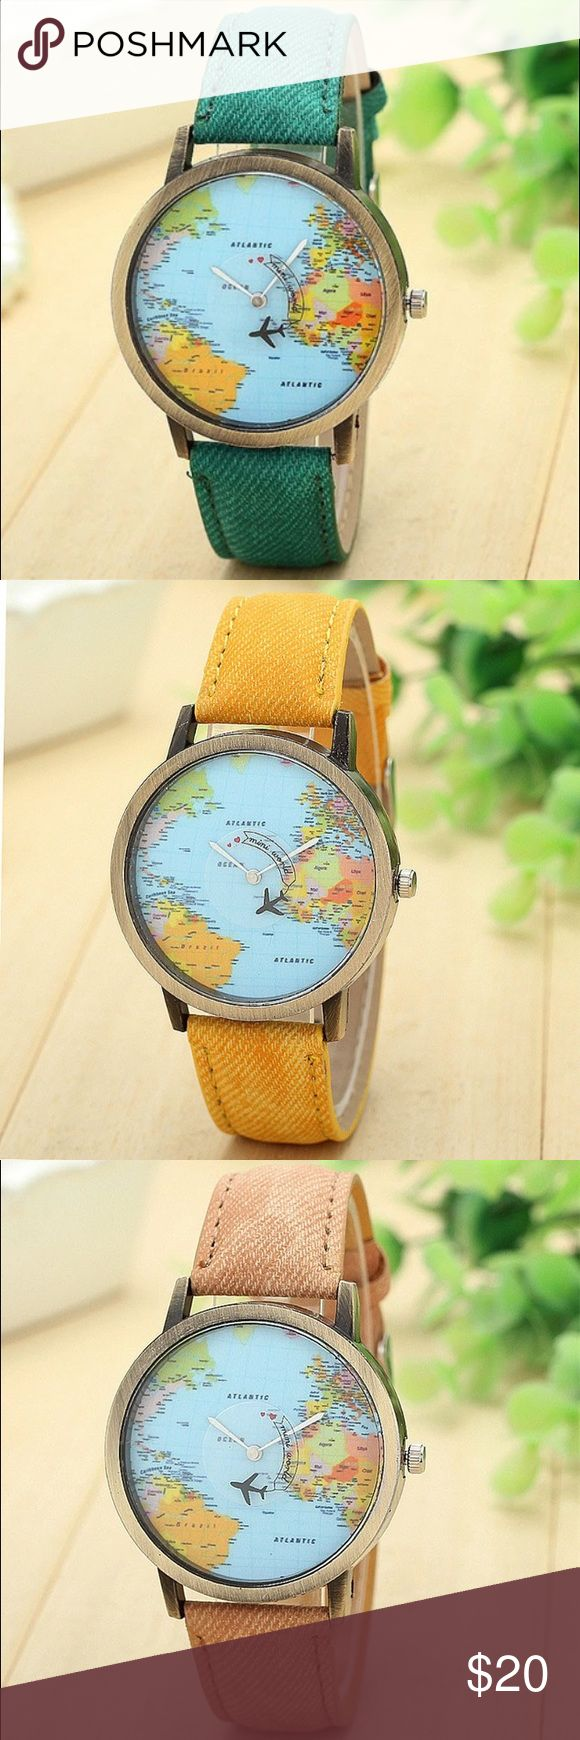 Those Who Wander World Map Watch Brand new world map watch. Ships same day if ordered by 10:00 CST. Bundle 3 items and save 15% Accessories Watches